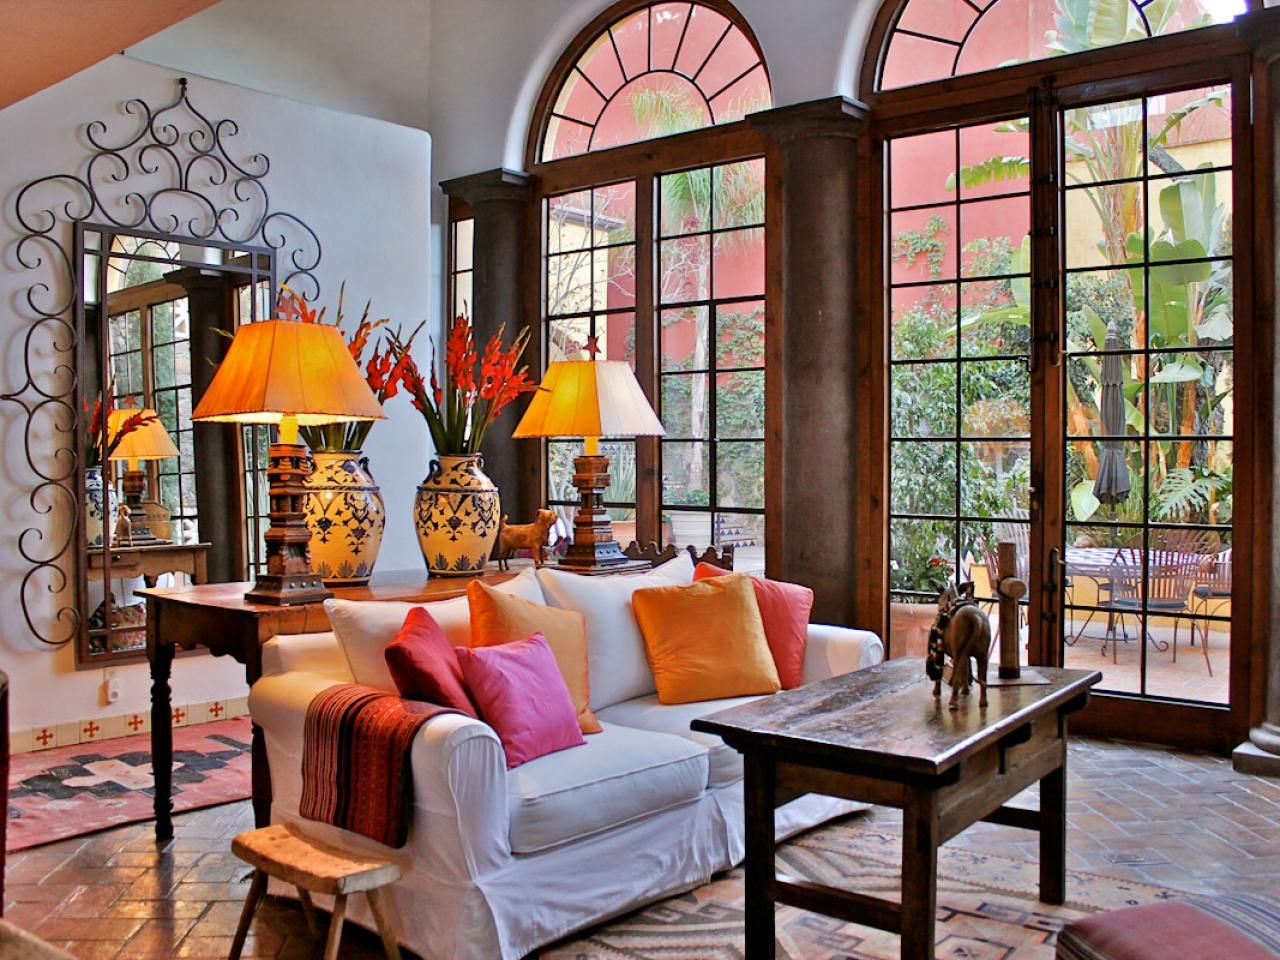 10 SpanishInspired Rooms Room interior design Room interior and Hgtv